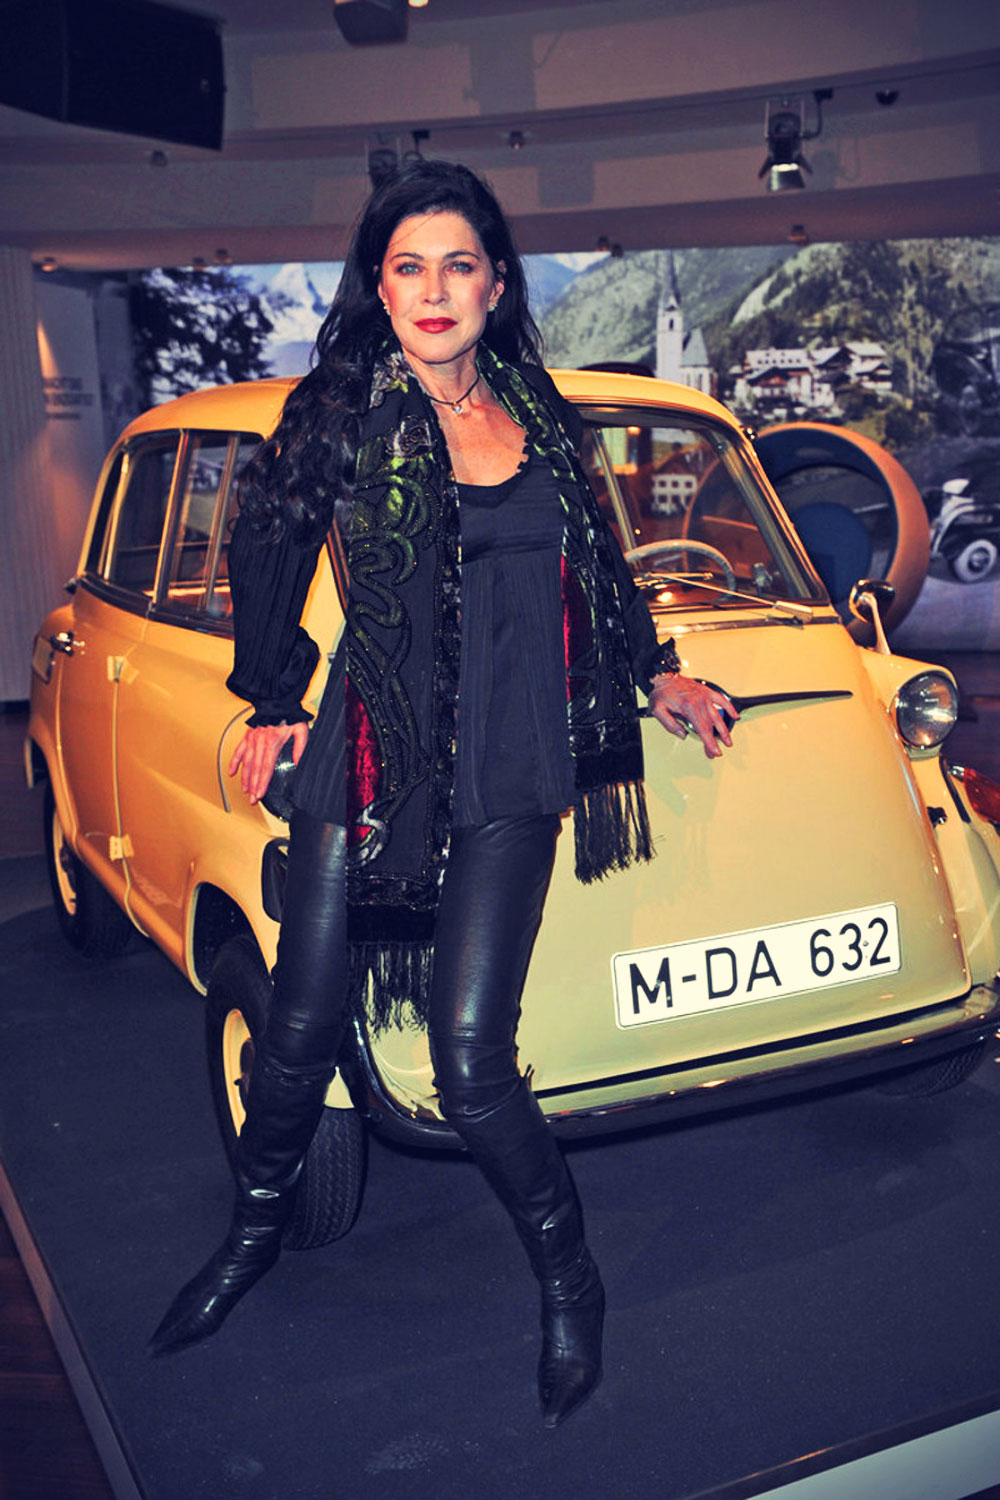 Anja Kruse at the BMW Kalender opening in Munich